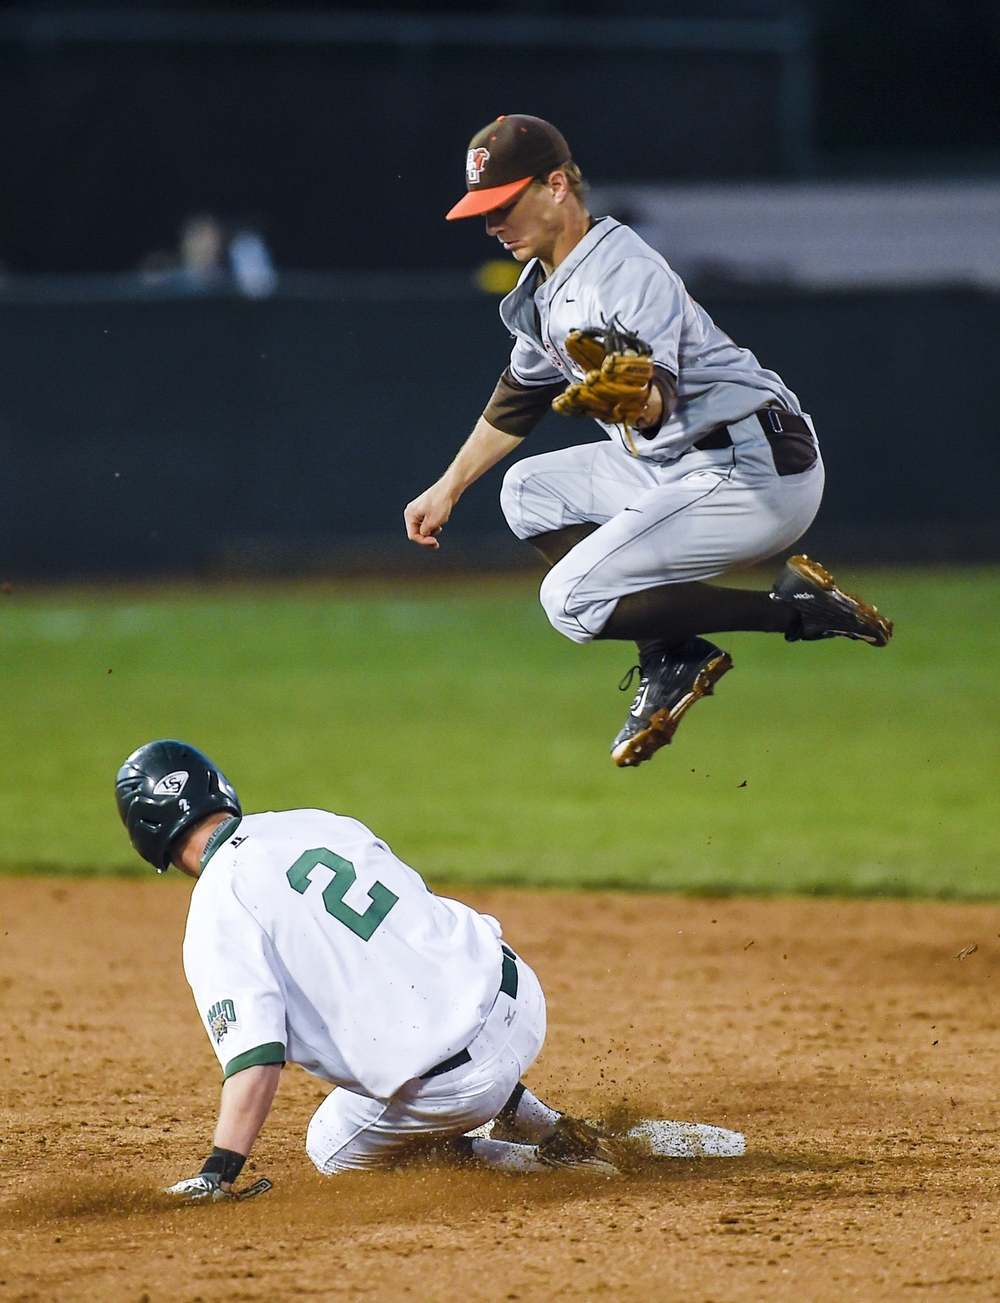 Ohio infielder Ty Black slides in safe while stealing second base during the Ohio vs. Bowling Green game at Bob Wren Stadium in Athens, Ohio on April 10, 2015. Ohio lost 4-2.